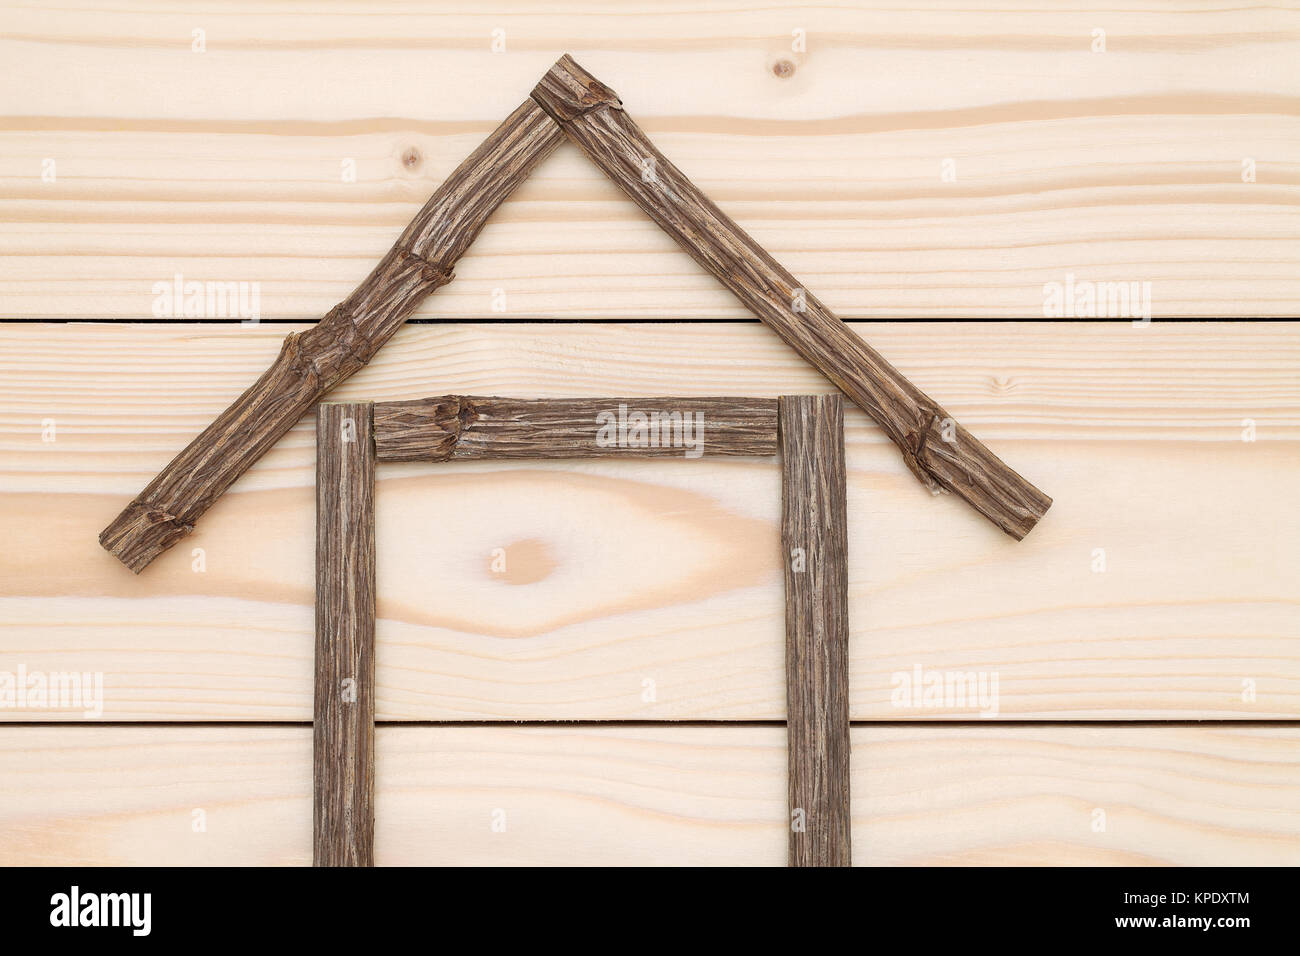 small house made of branches on wood background Stock Photo